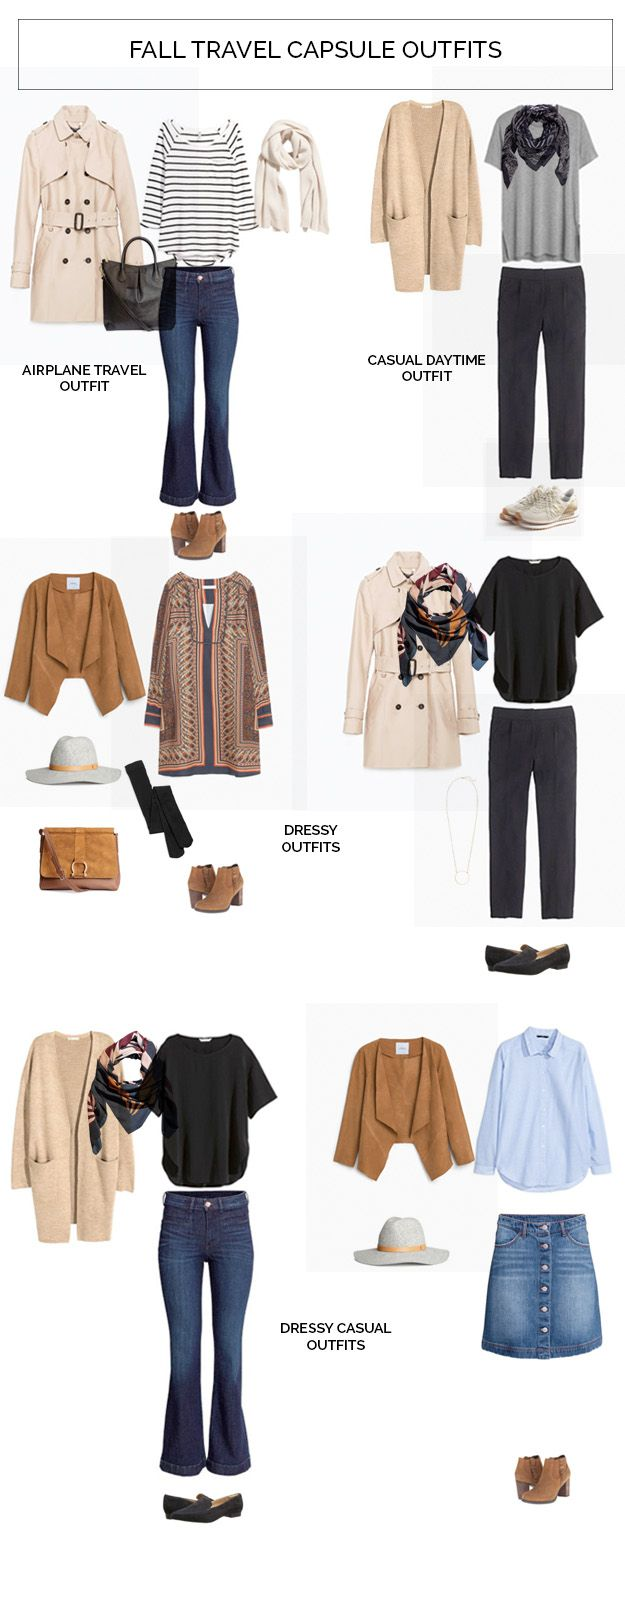 If you're on the move this holiday travel season use my Fall Travel Capsule Wardrobe to help you pack your suitcase. Pick and choose the elements that work for your trip and you'll have one less thing to stress about. Here I've taken the capsule and put together outfits that coordinate for different occasions. Details …